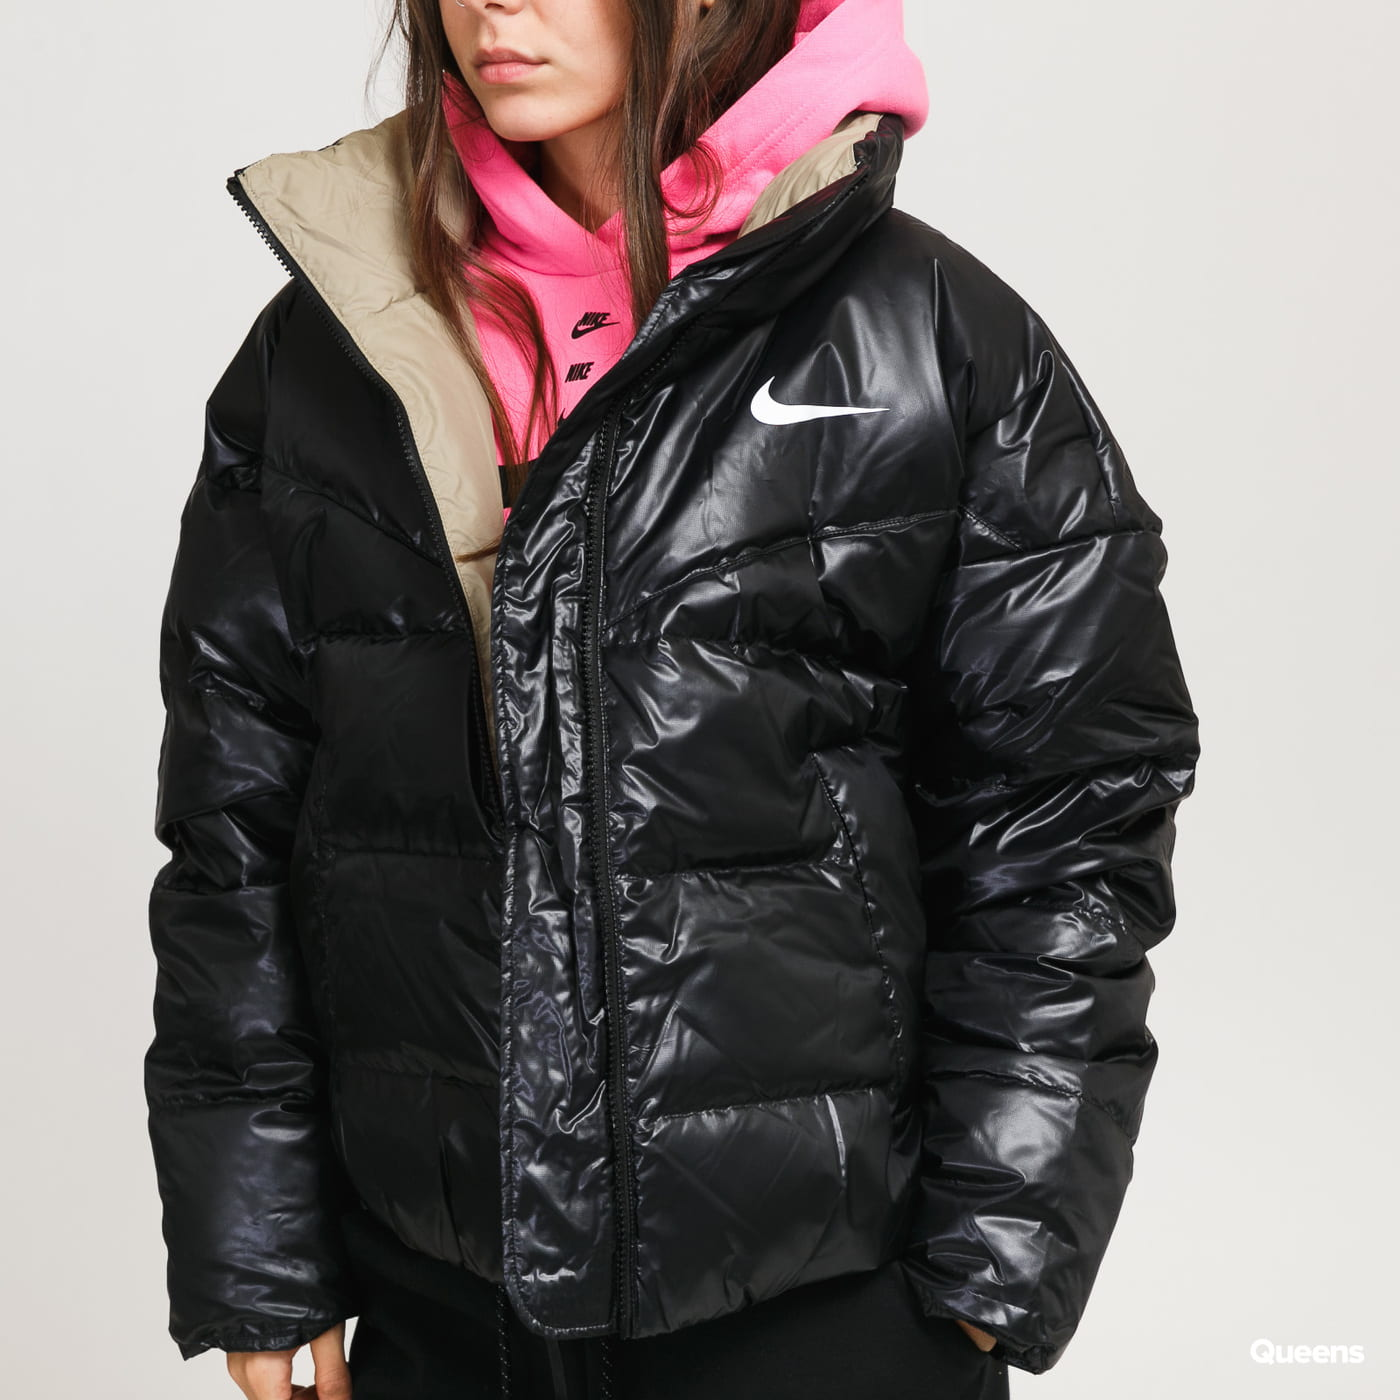 Nike This black women's jacket from Nike combines a light construction with down filling and guarantees you'll move outside freely even in January temperat This black women's jacket from Nike combines a light construction with down filling and guarantees you'll move outside freely even in January temperat